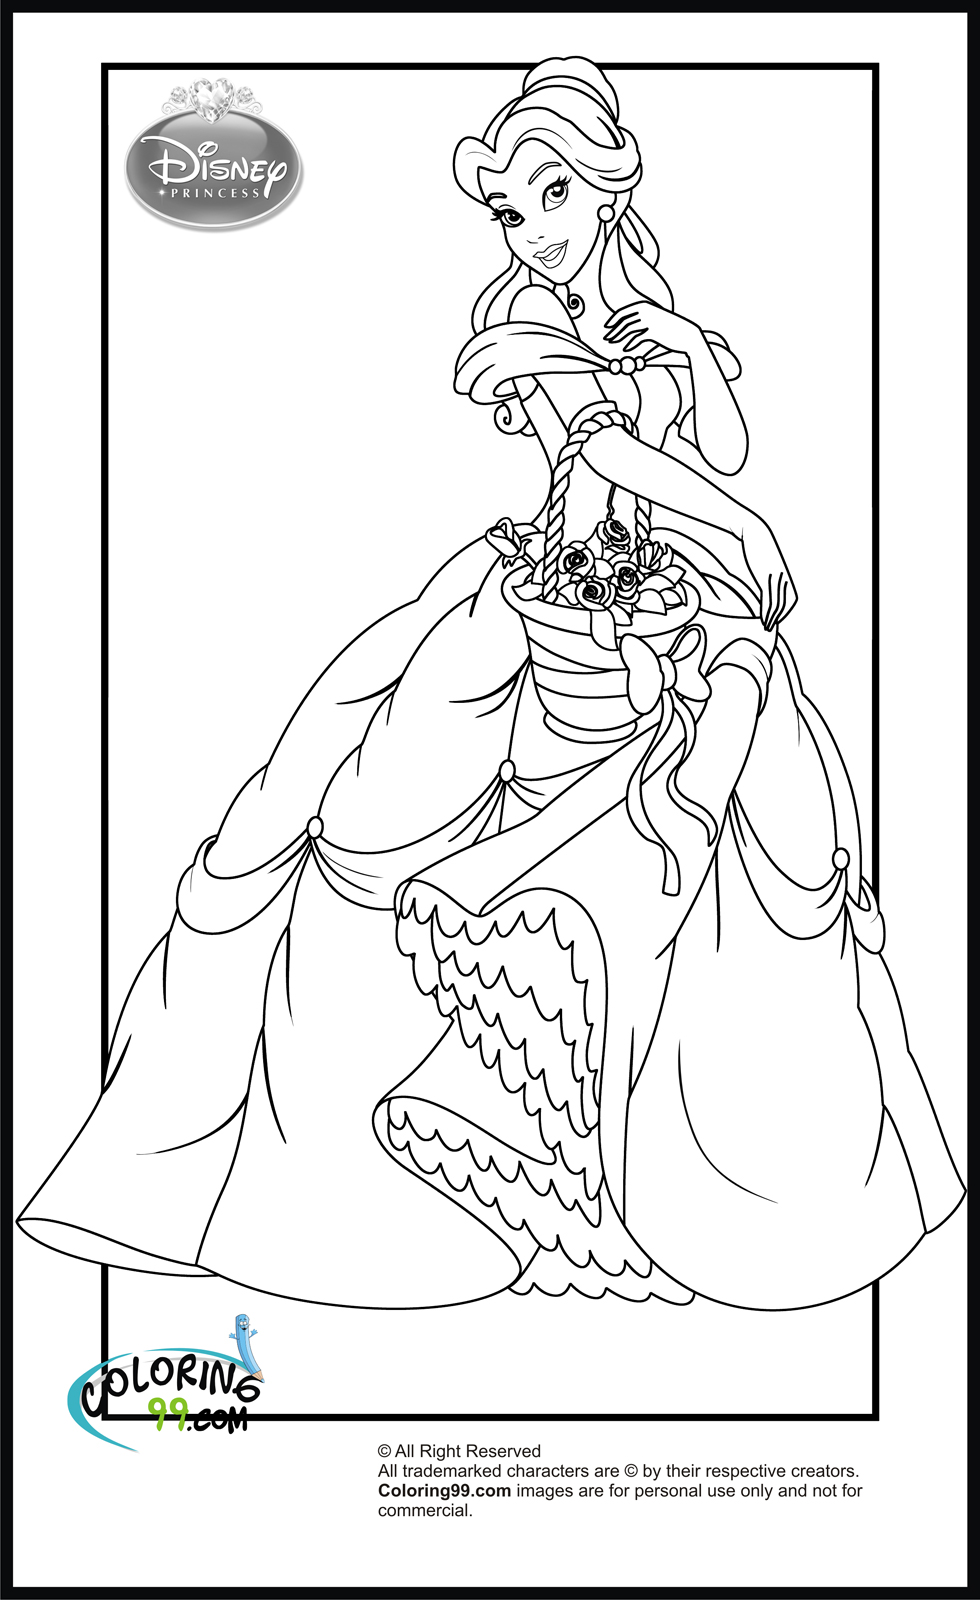 Disney Princess Coloring Pages | Minister Coloring | colouring pages disney princess printable